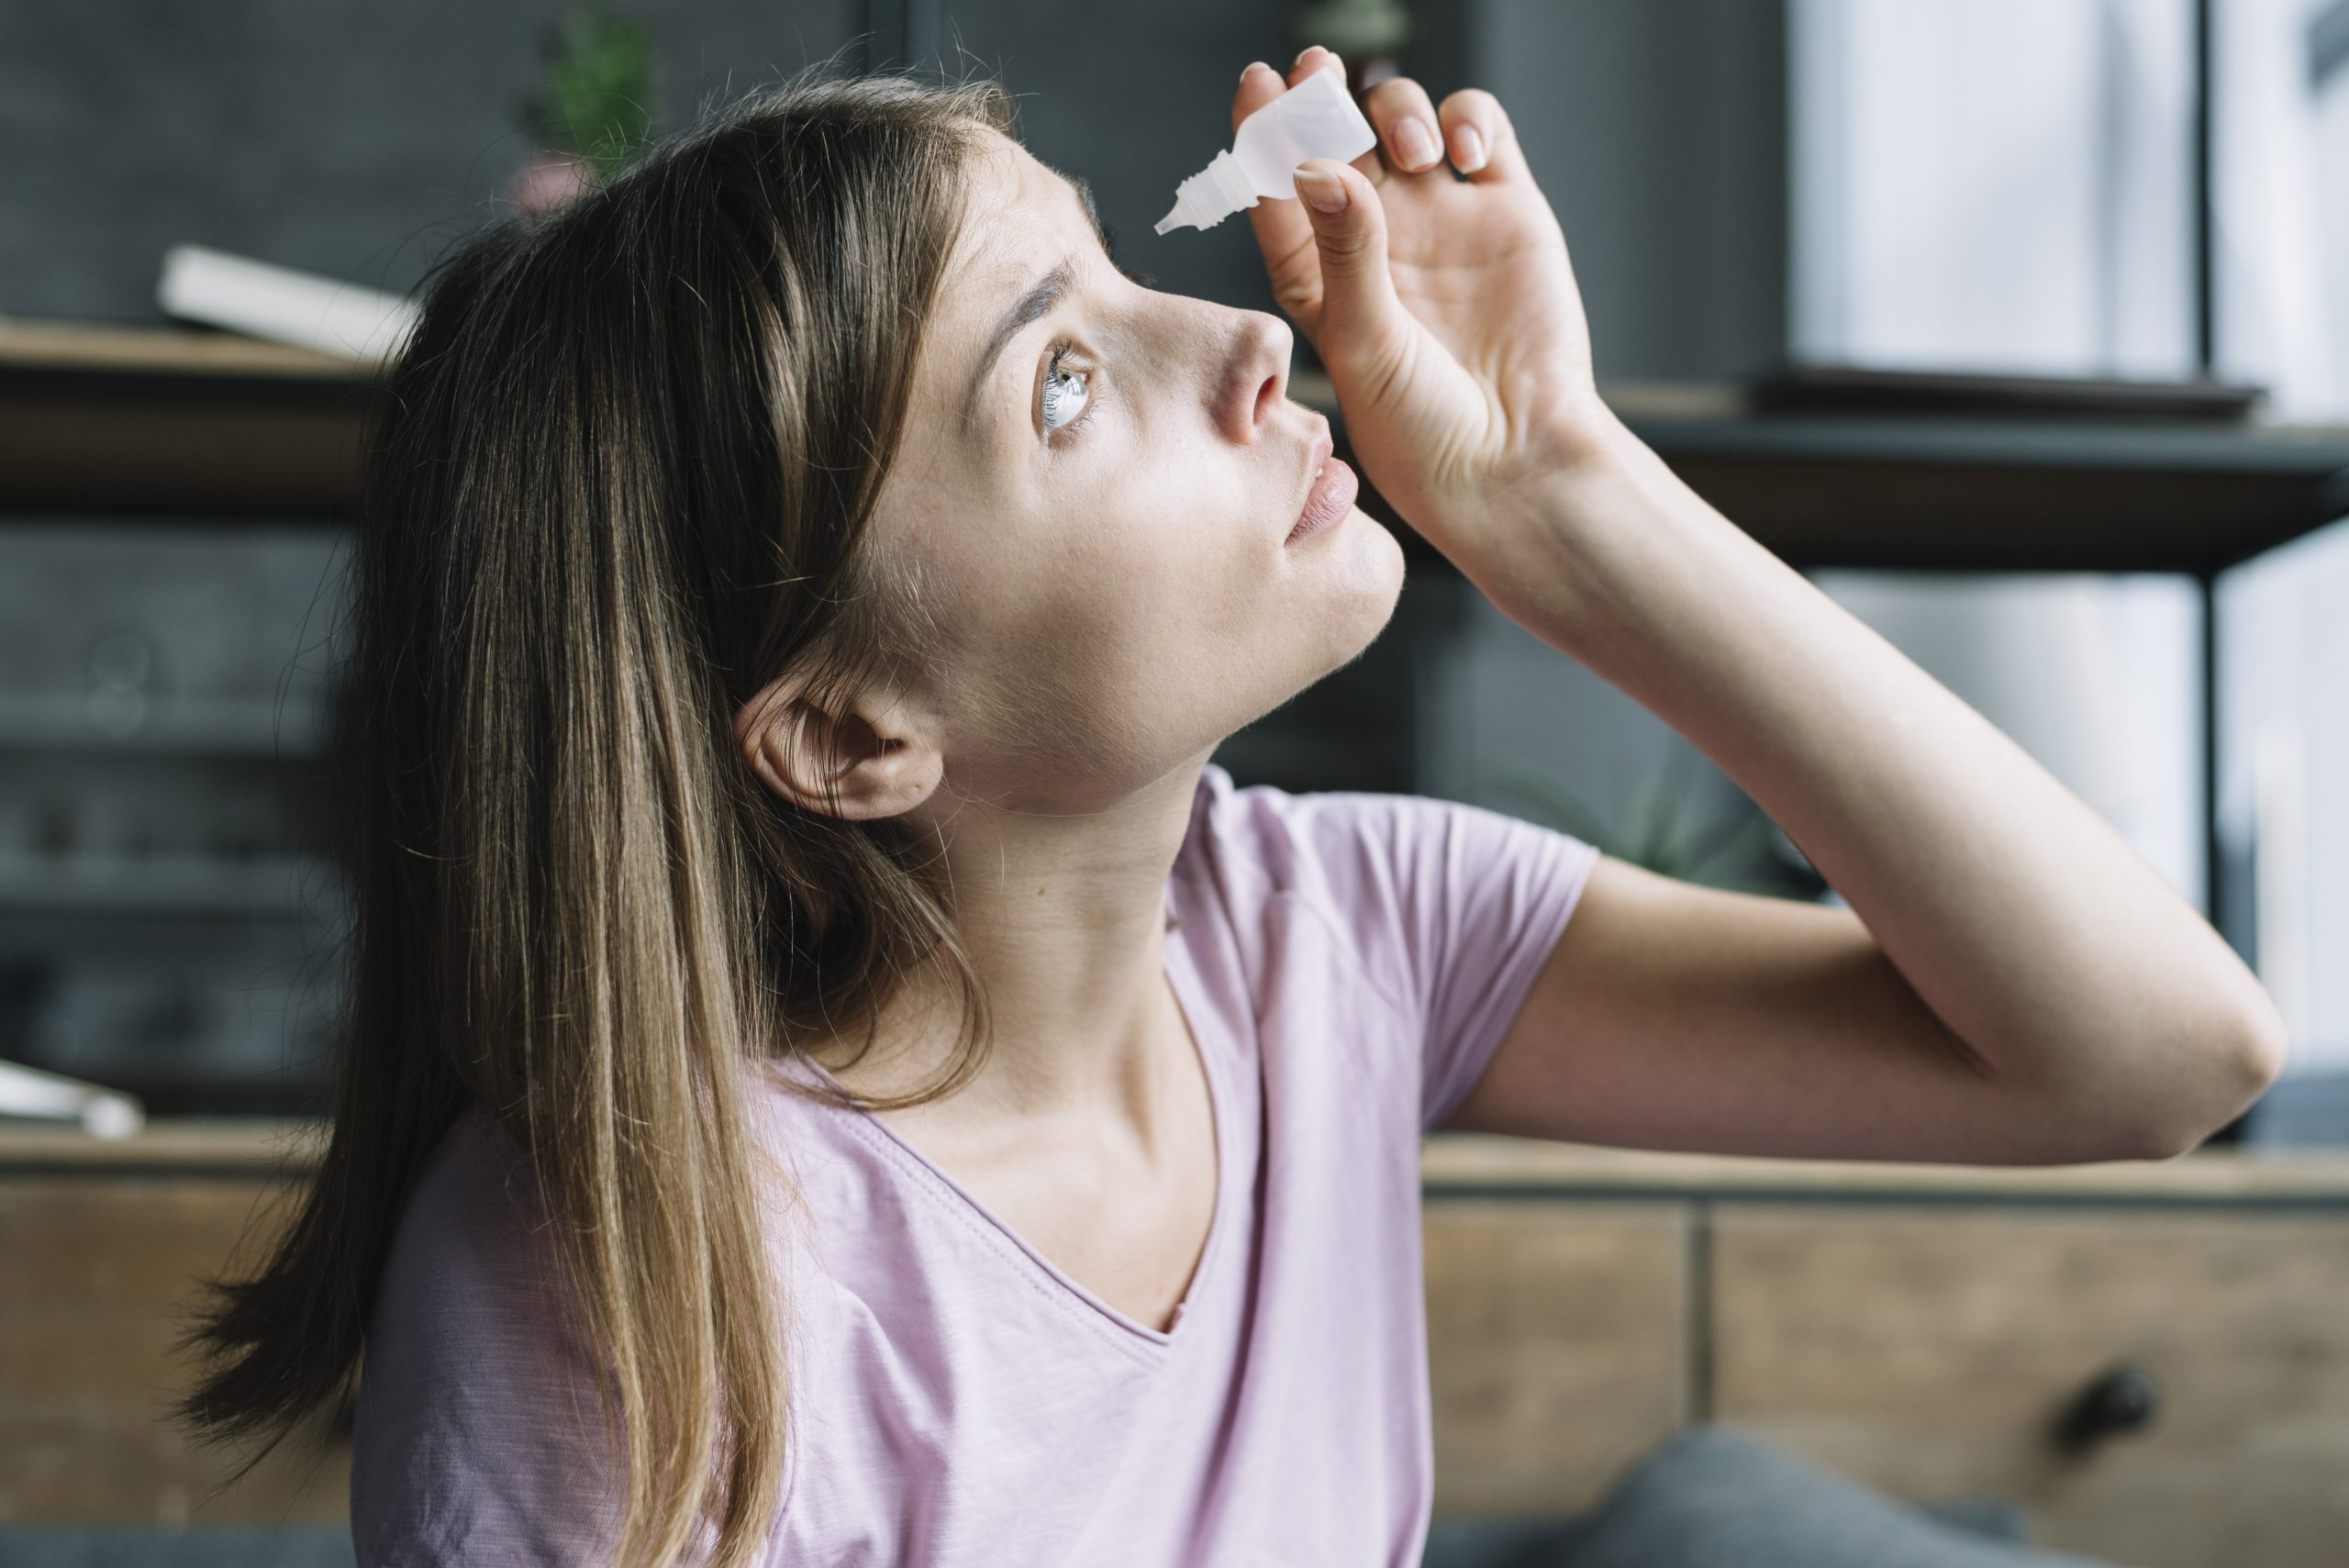 Young woman putting in eye drops for glaucoma treatment